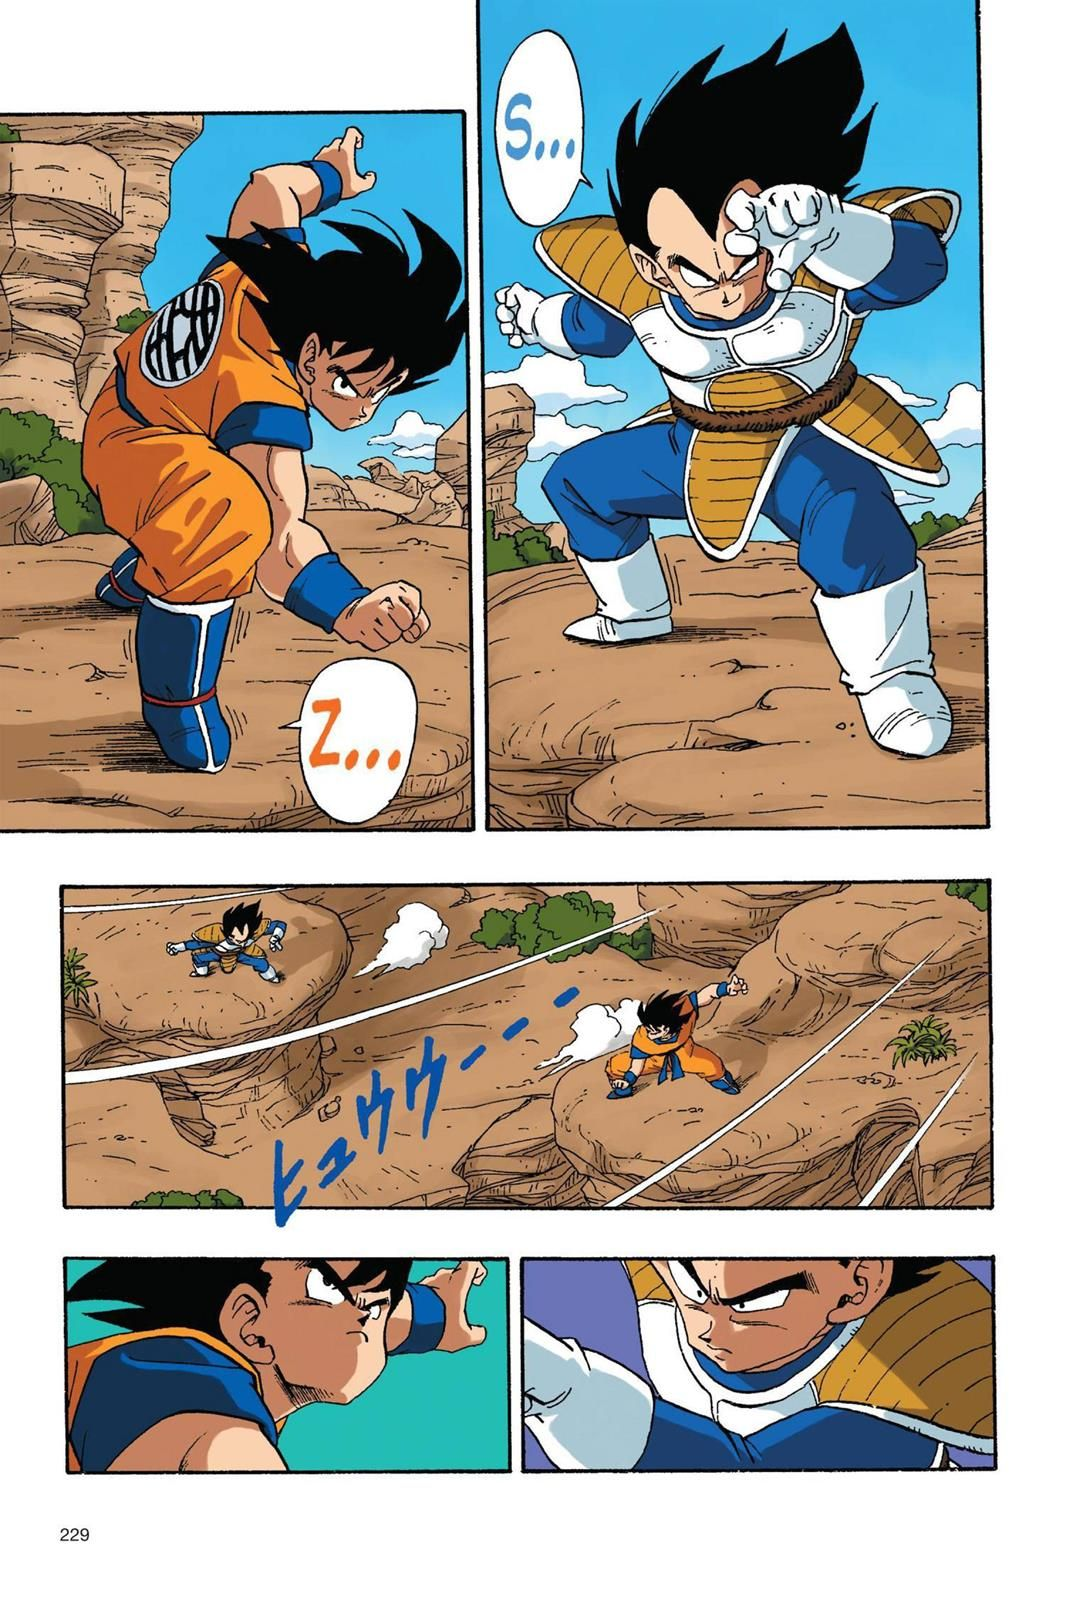 Dragon Ball Full Color Saiyan Arc Chapter 34 Page 2 This Is The Beginning Of The Climact Dragon Ball Super Manga Anime Dragon Ball Super Dragon Ball Artwork